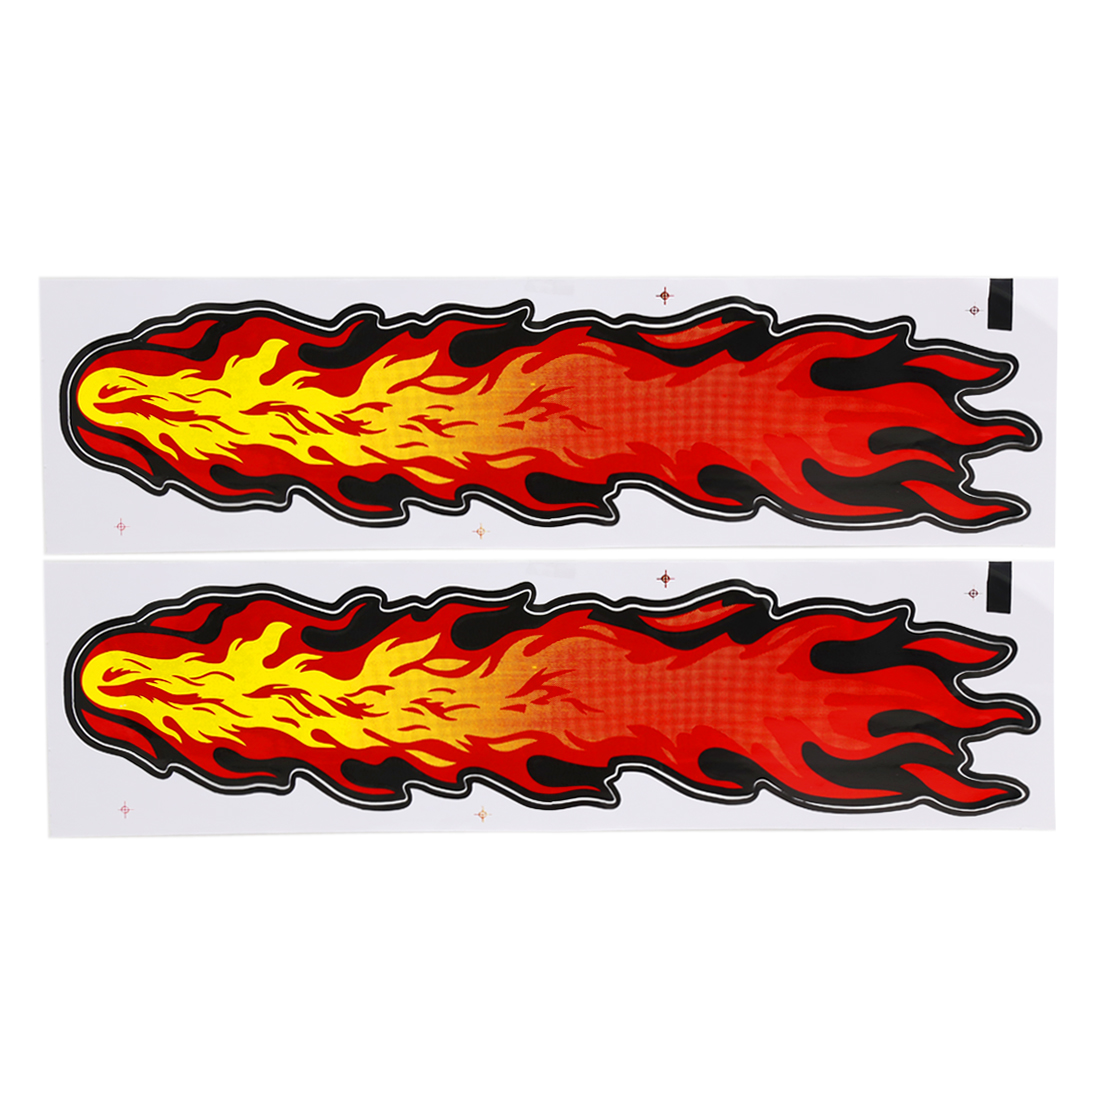 2 Pcs Plastic Fire Flame Style Self-adhesive Sticker Graphic Decal 52cm x 12.5cm